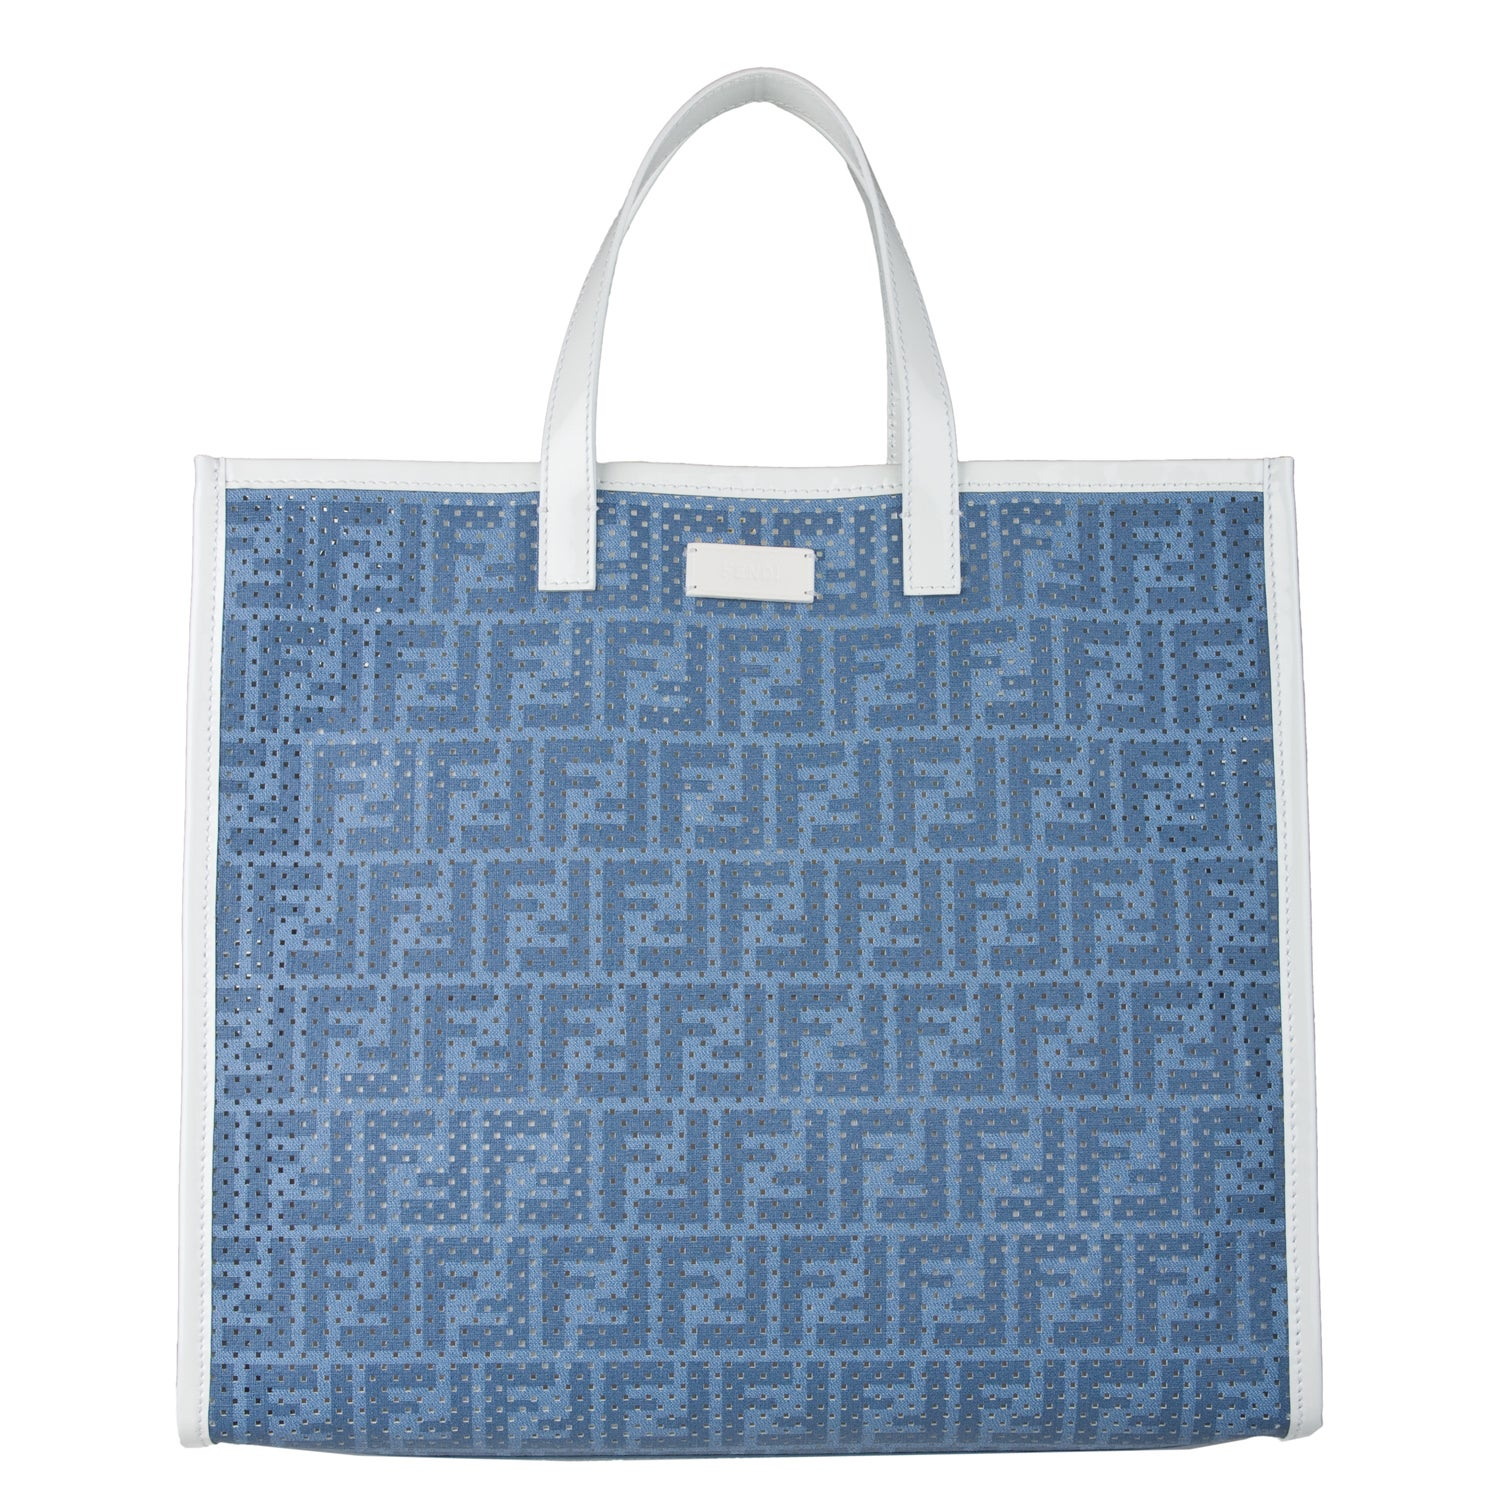 Fendi Blue Perforated Tote Bag - Thumbnail 0